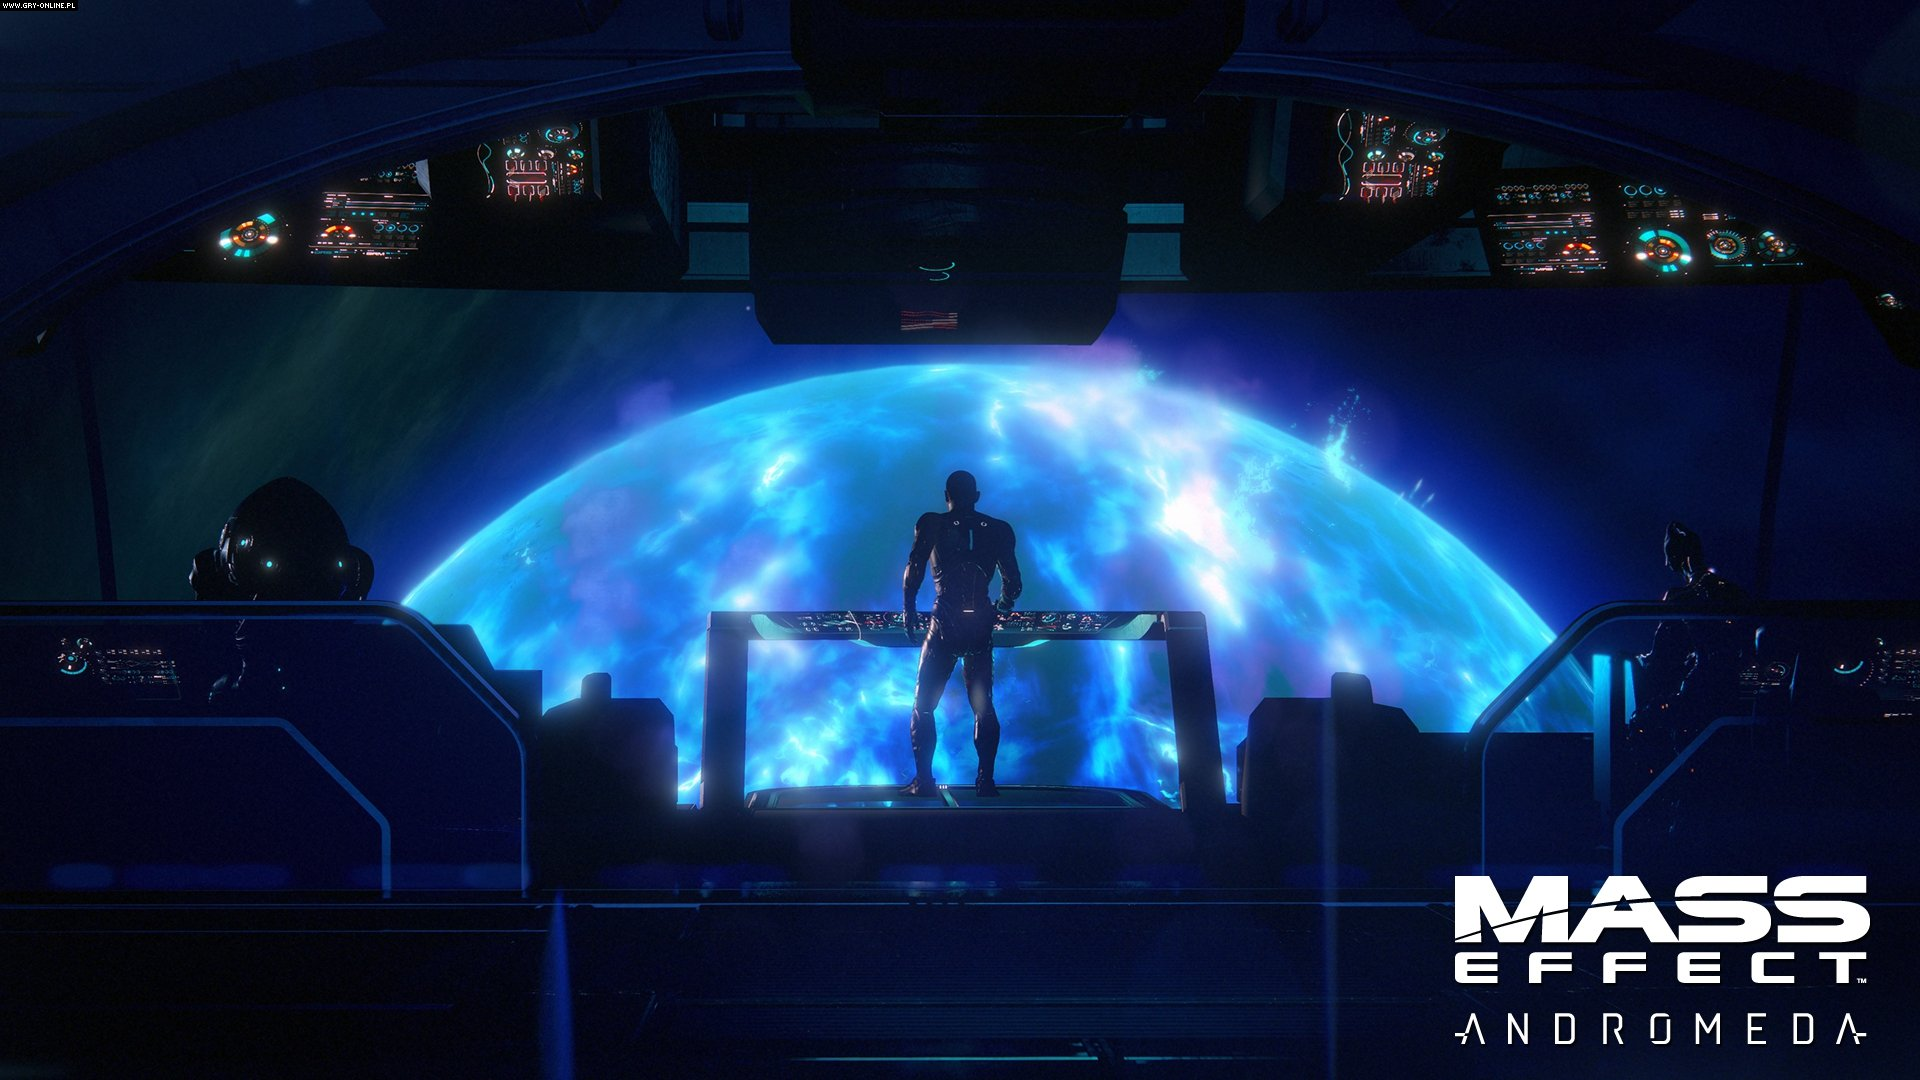 Mass Effect: Andromeda PC, PS4, XONE Games Image 84/97, BioWare Corporation, Electronic Arts Inc.